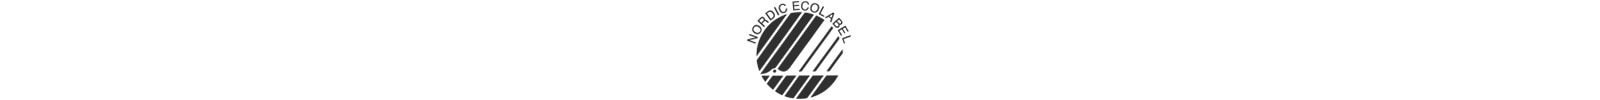 Nordic Swan Ecolabel icon